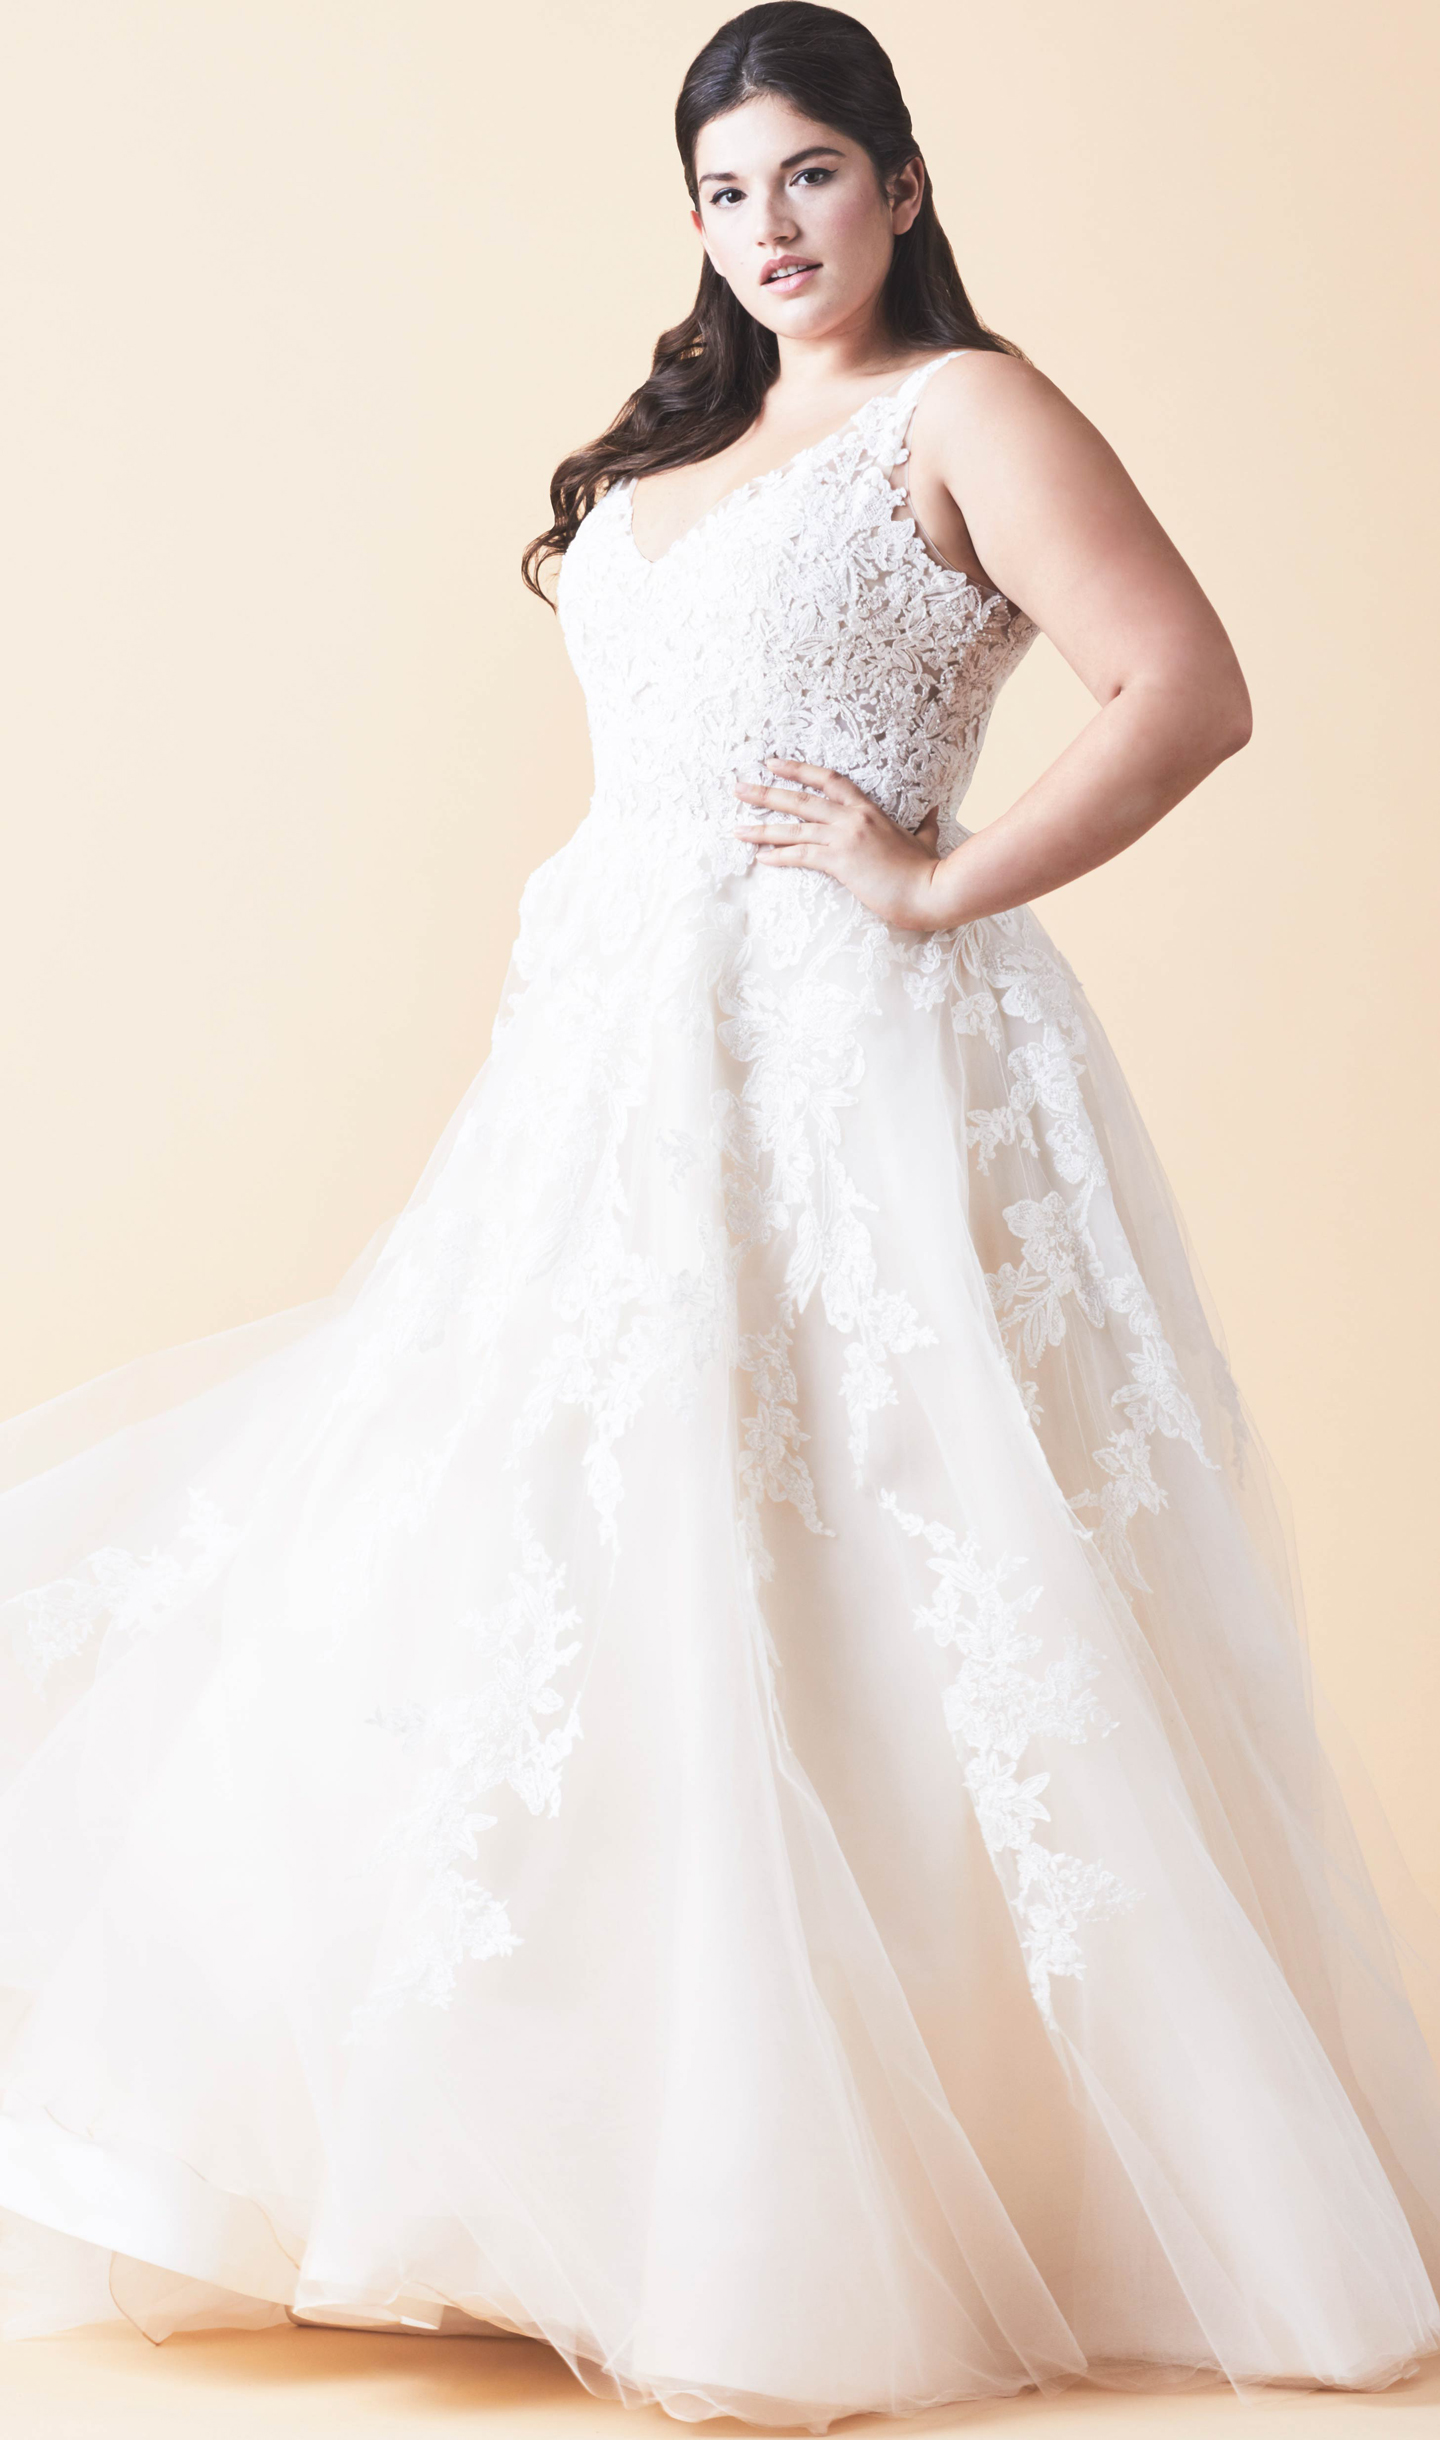 plus size wedding dress — Birmingham and Nashville Blog ...